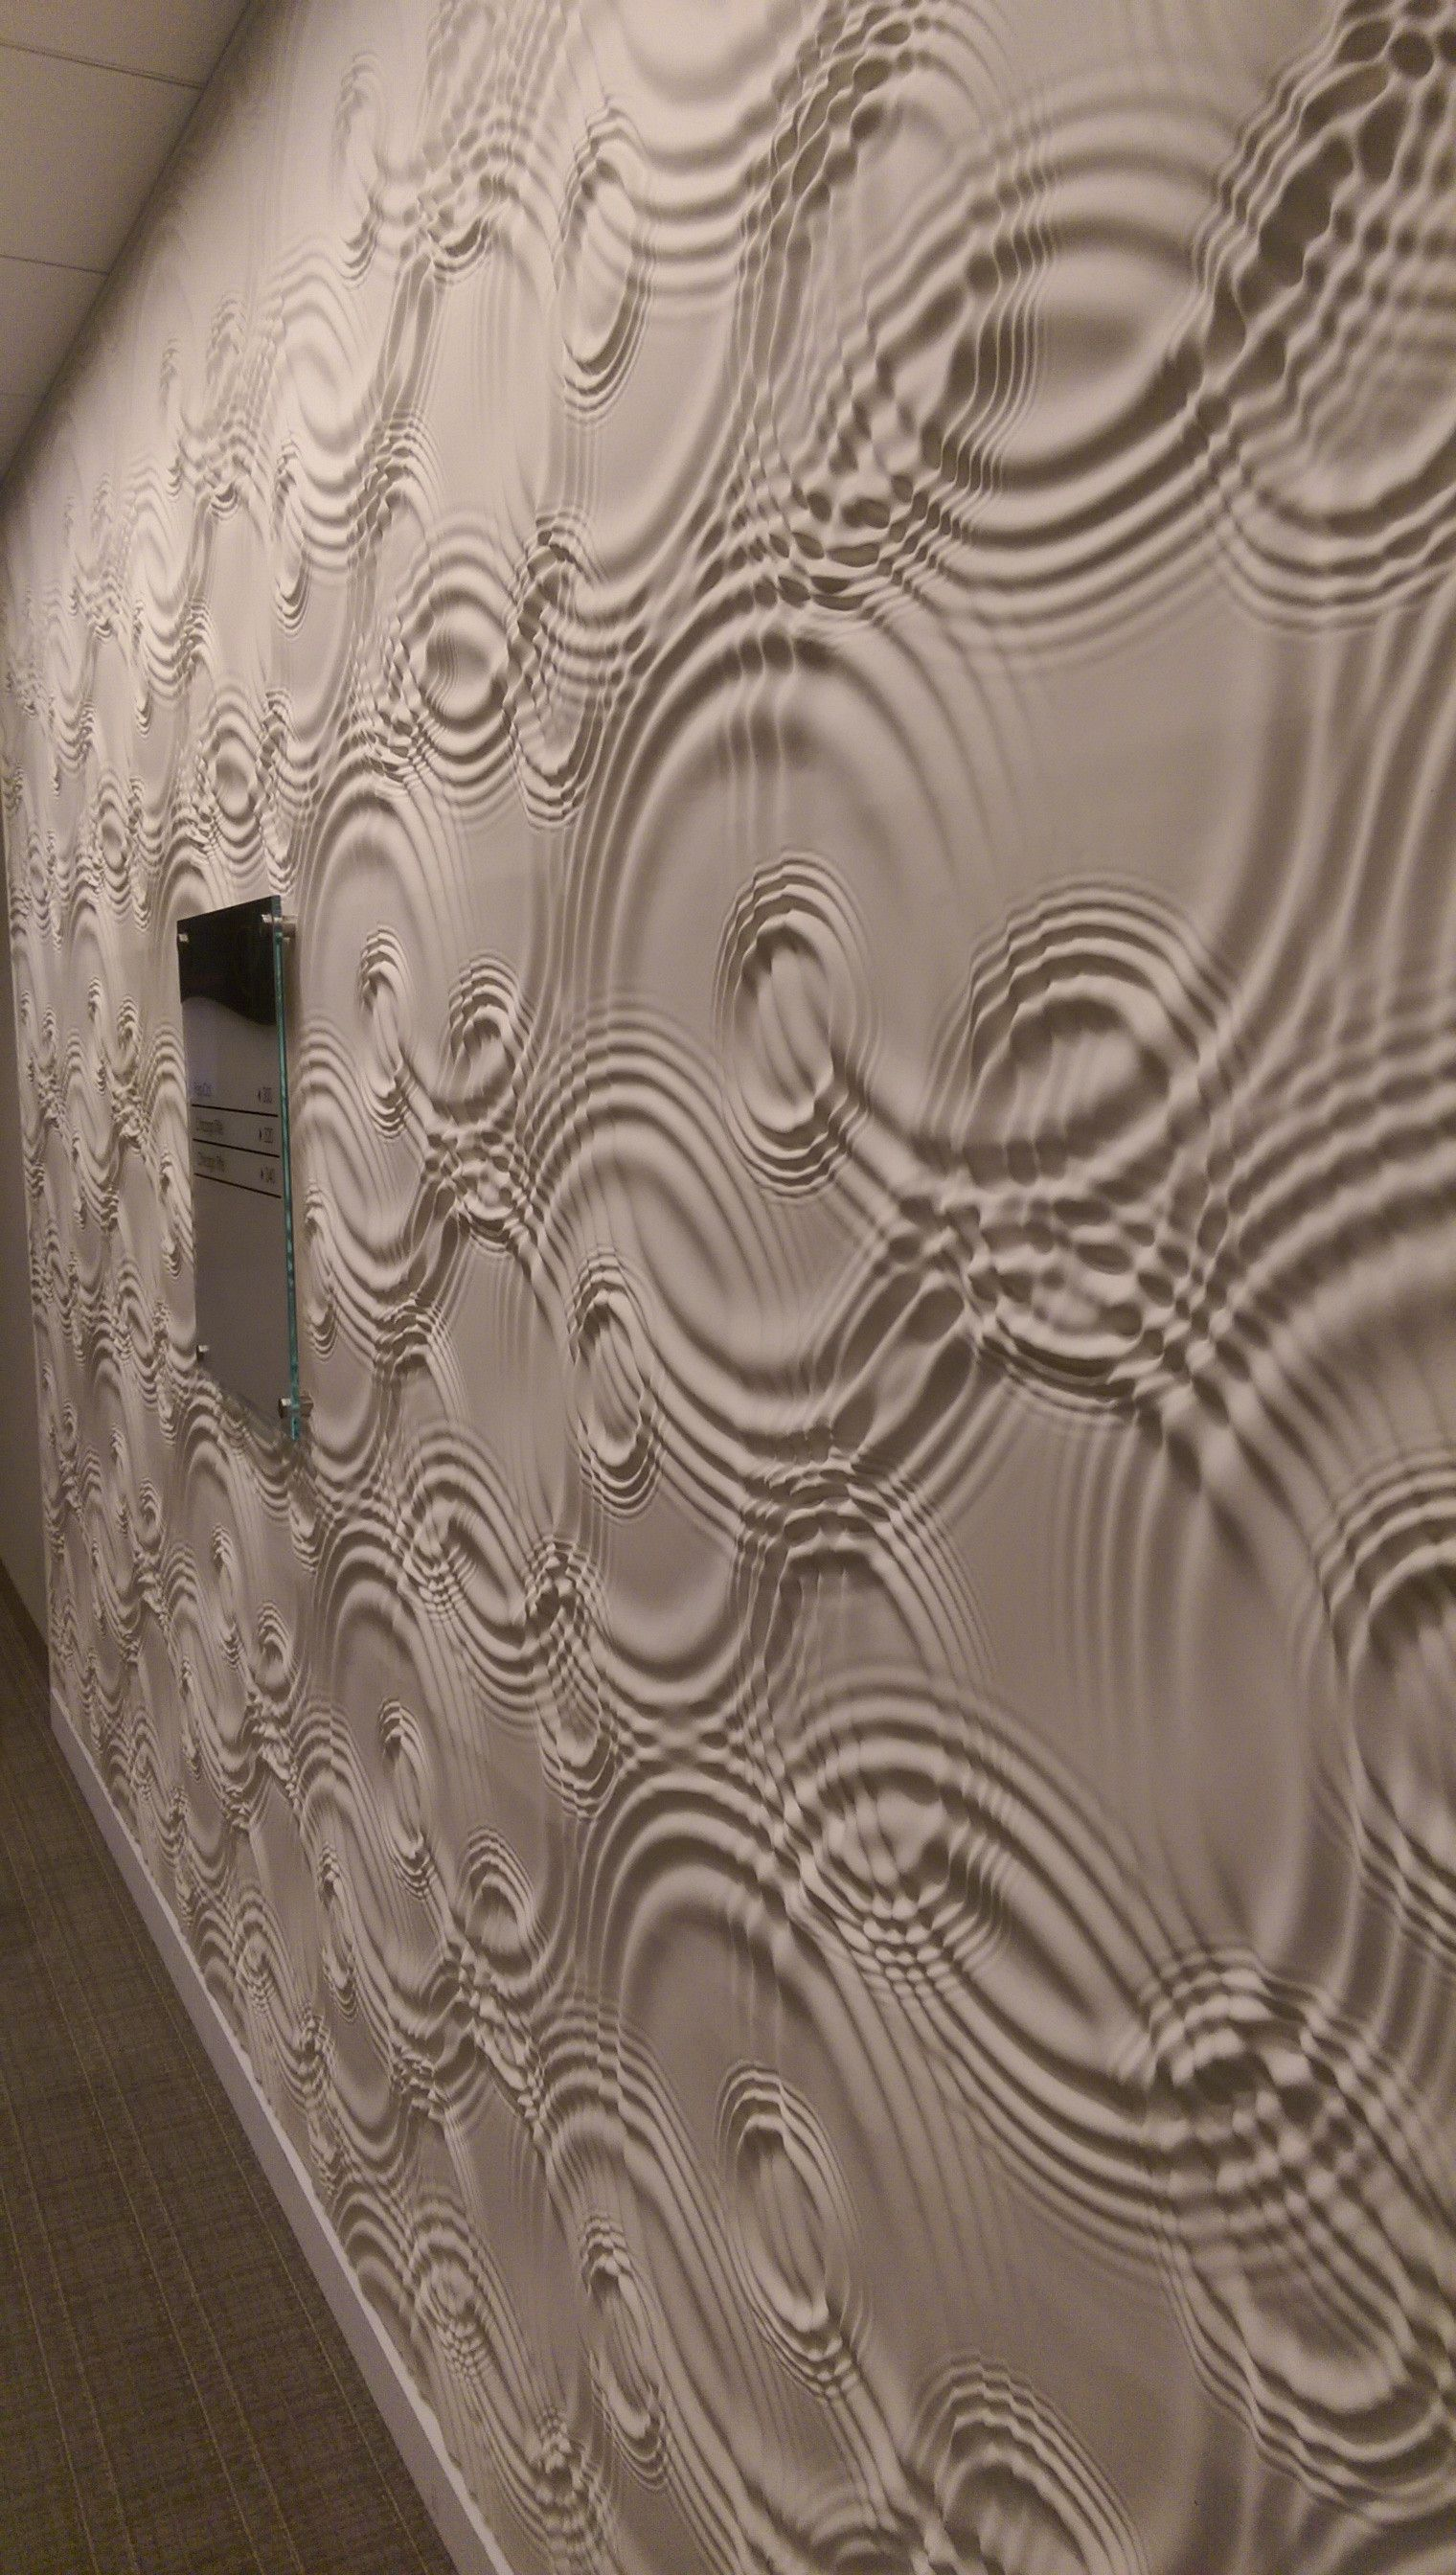 The texture on this wall looks like rippling liquid.